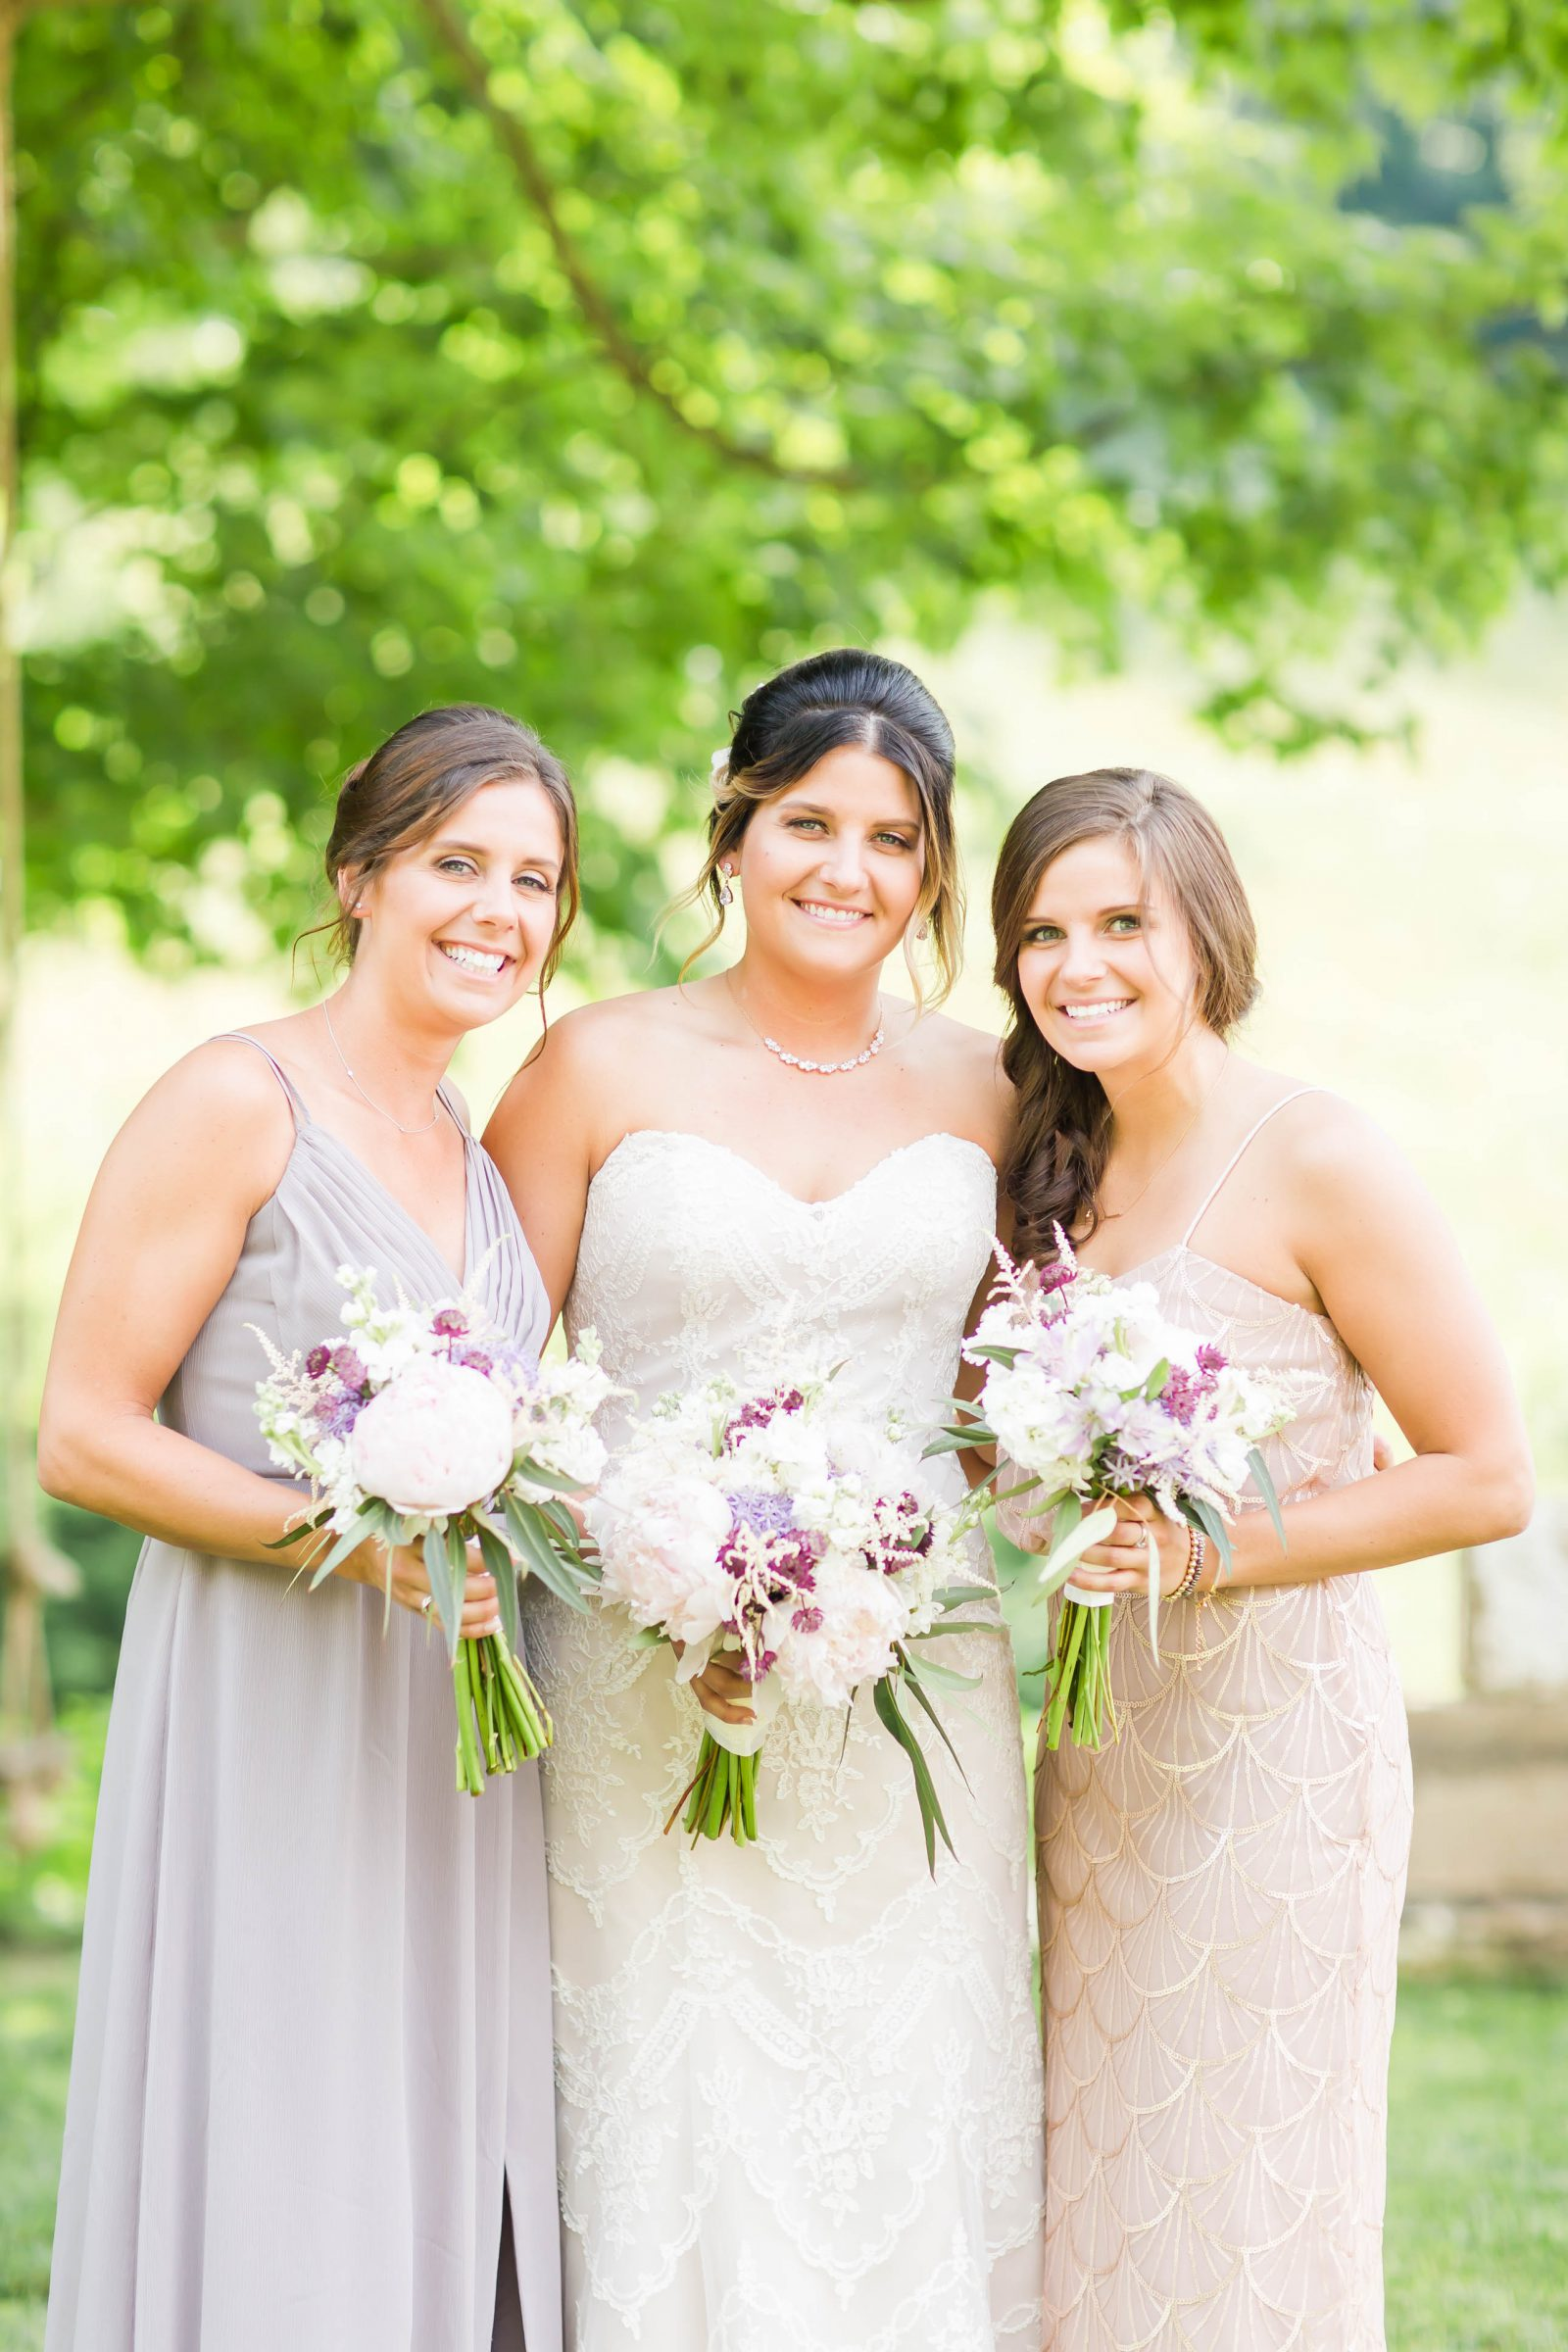 rivercrest-farm-summer-wedding-loren-jackson-photography-50